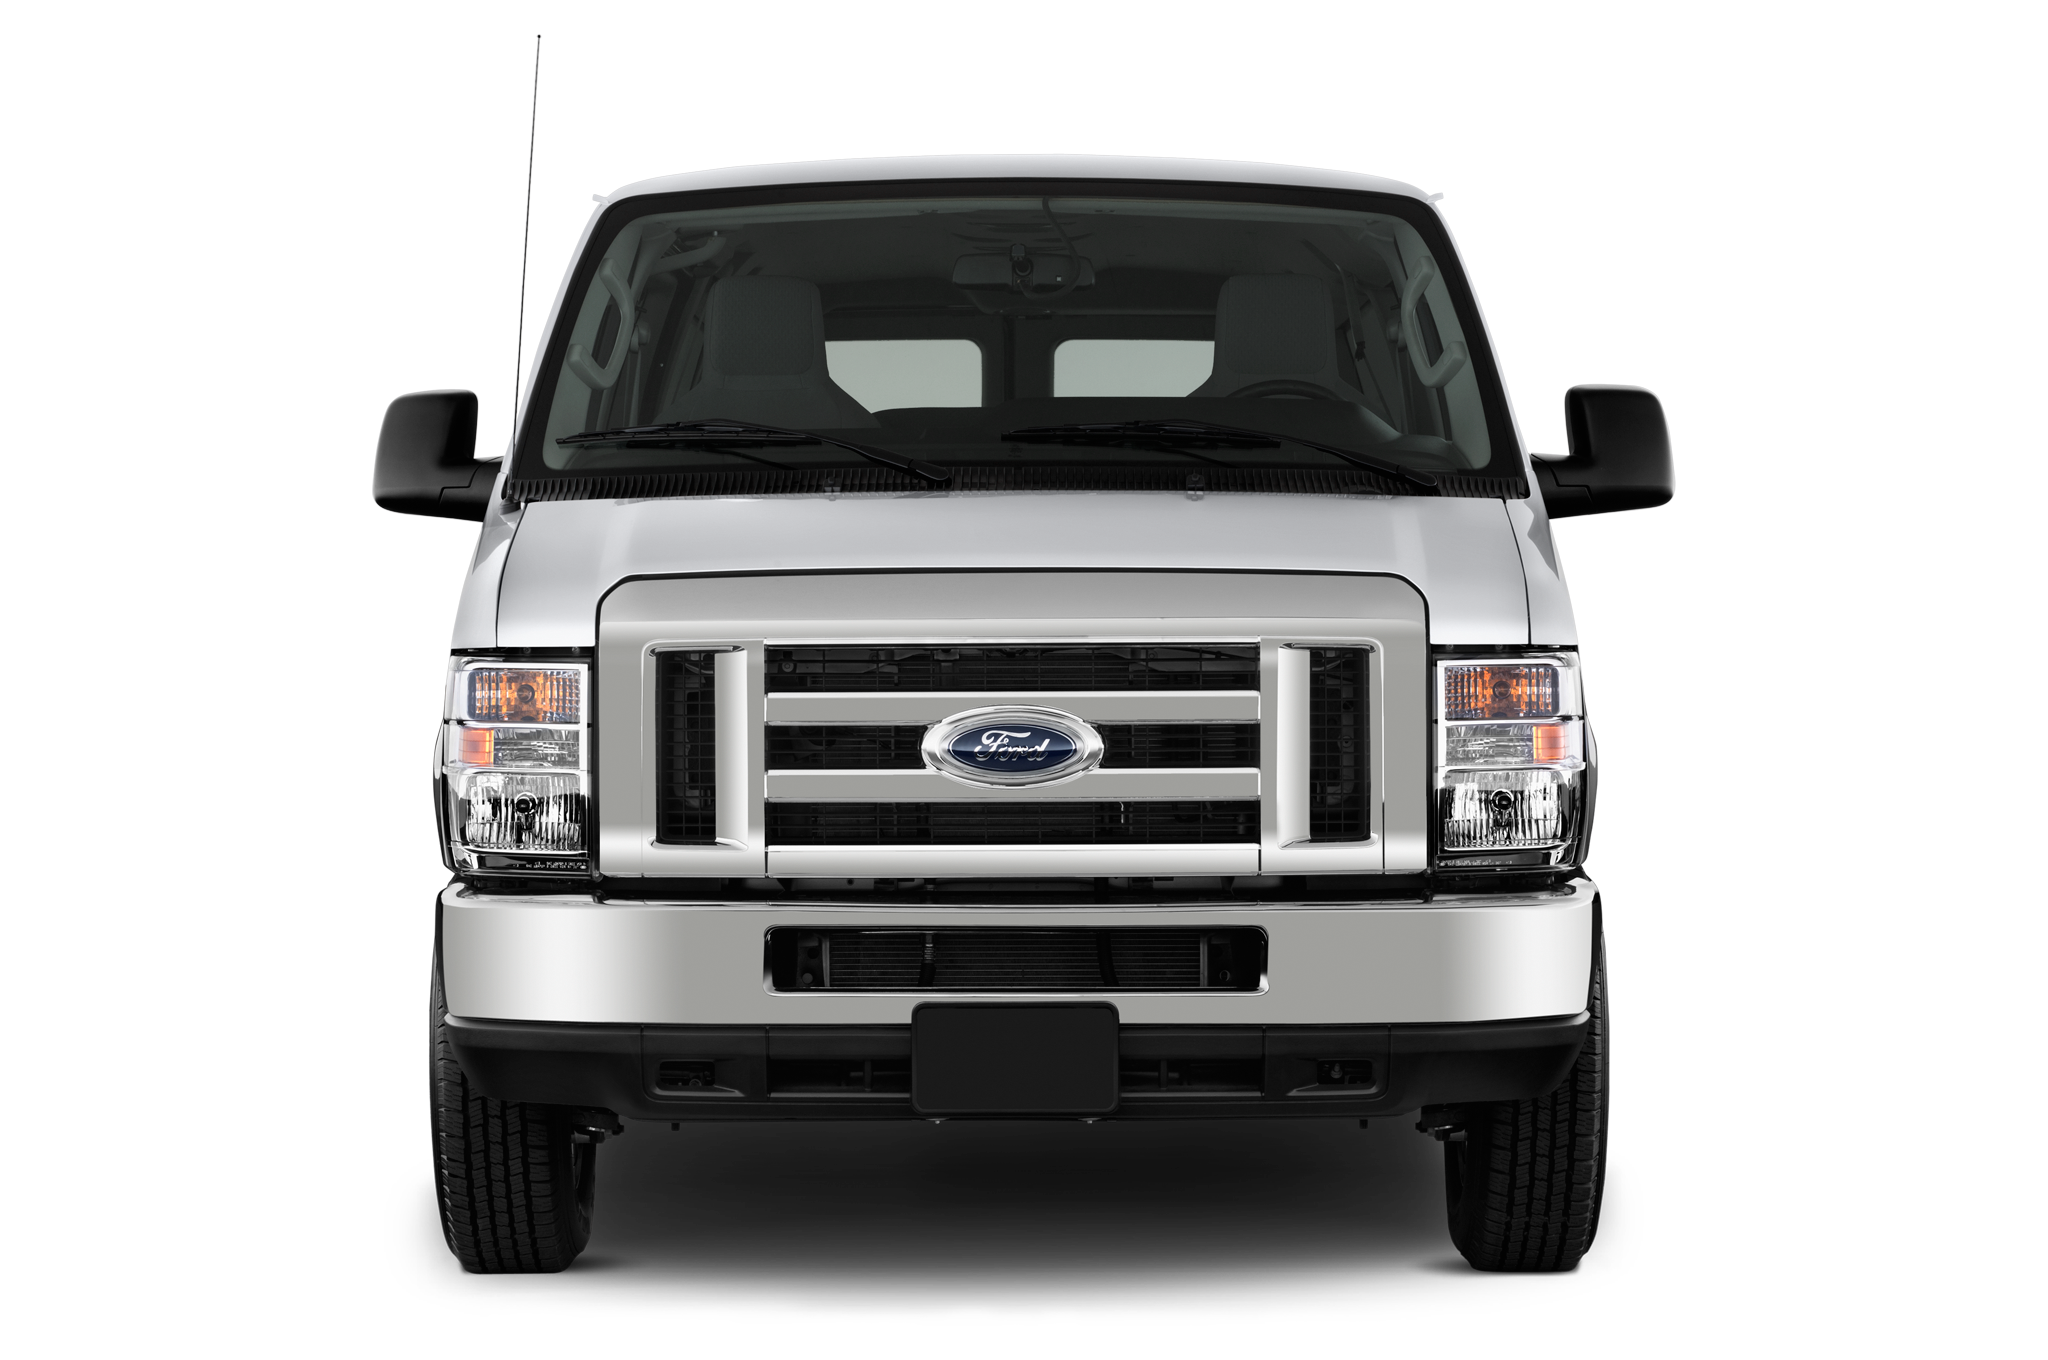 2011 ford f150 service manual